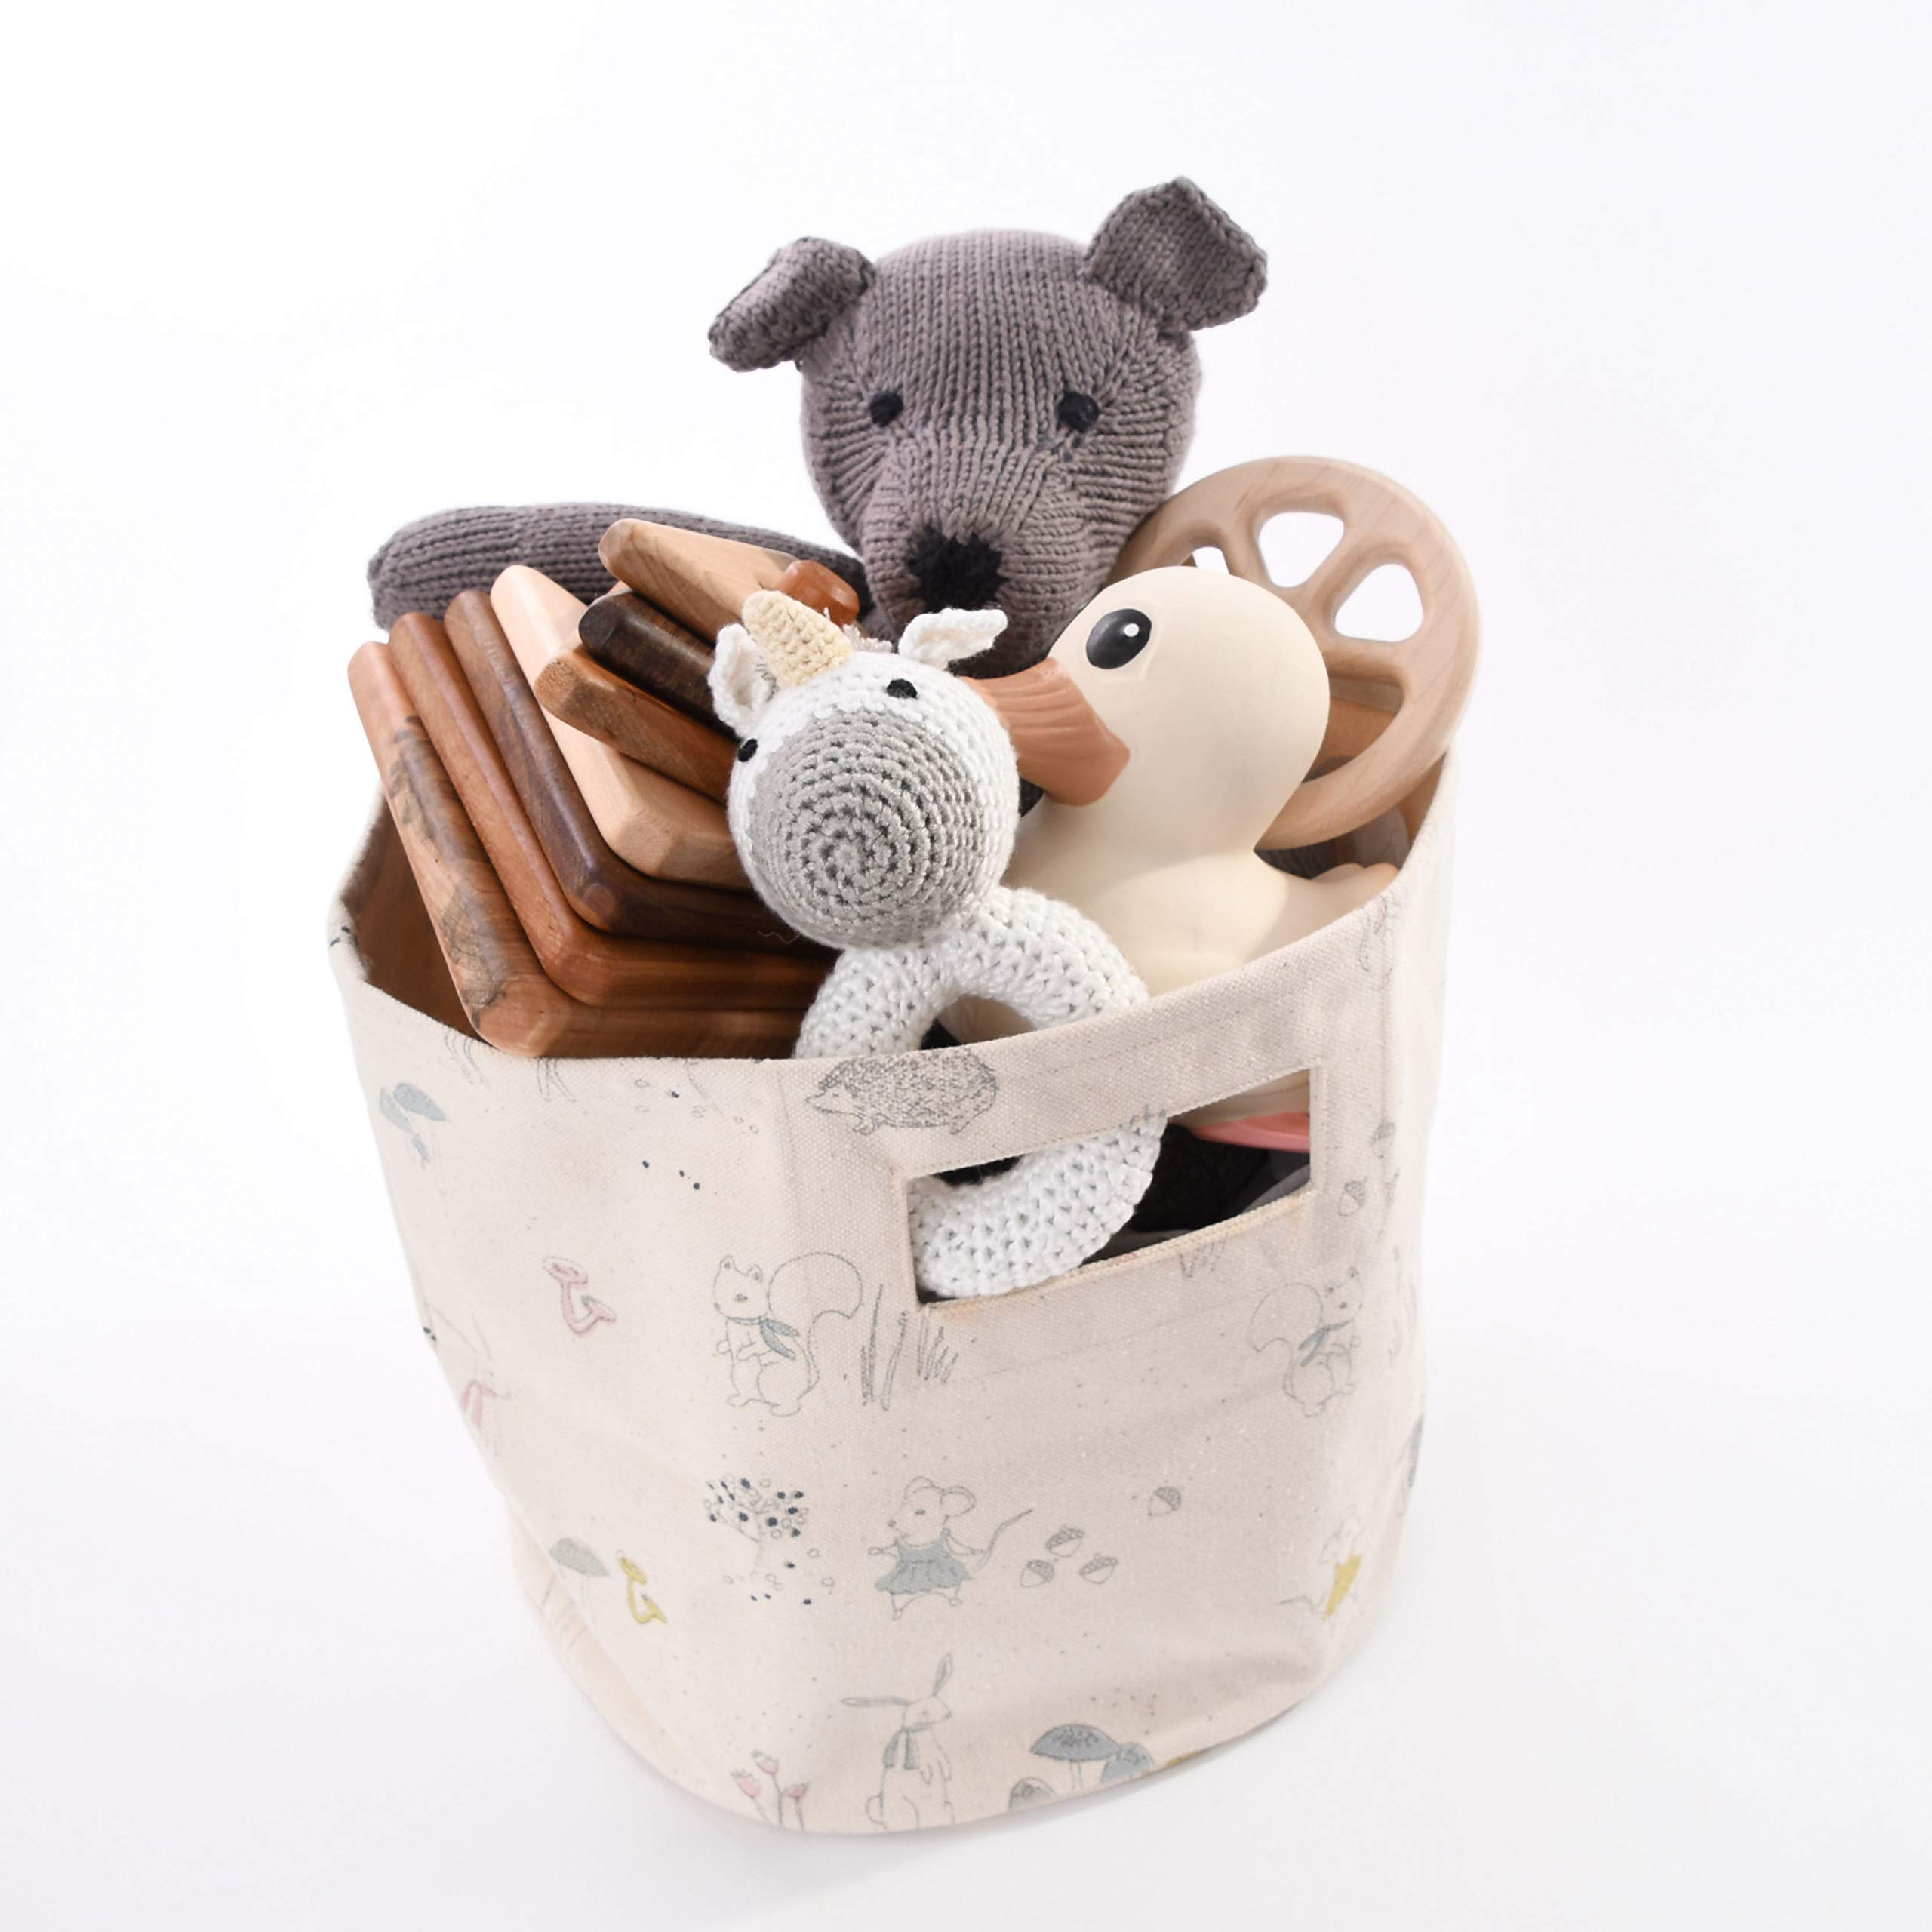 Organic Baby Toys Gift Set - Natural Teethers and Stuffed Toys